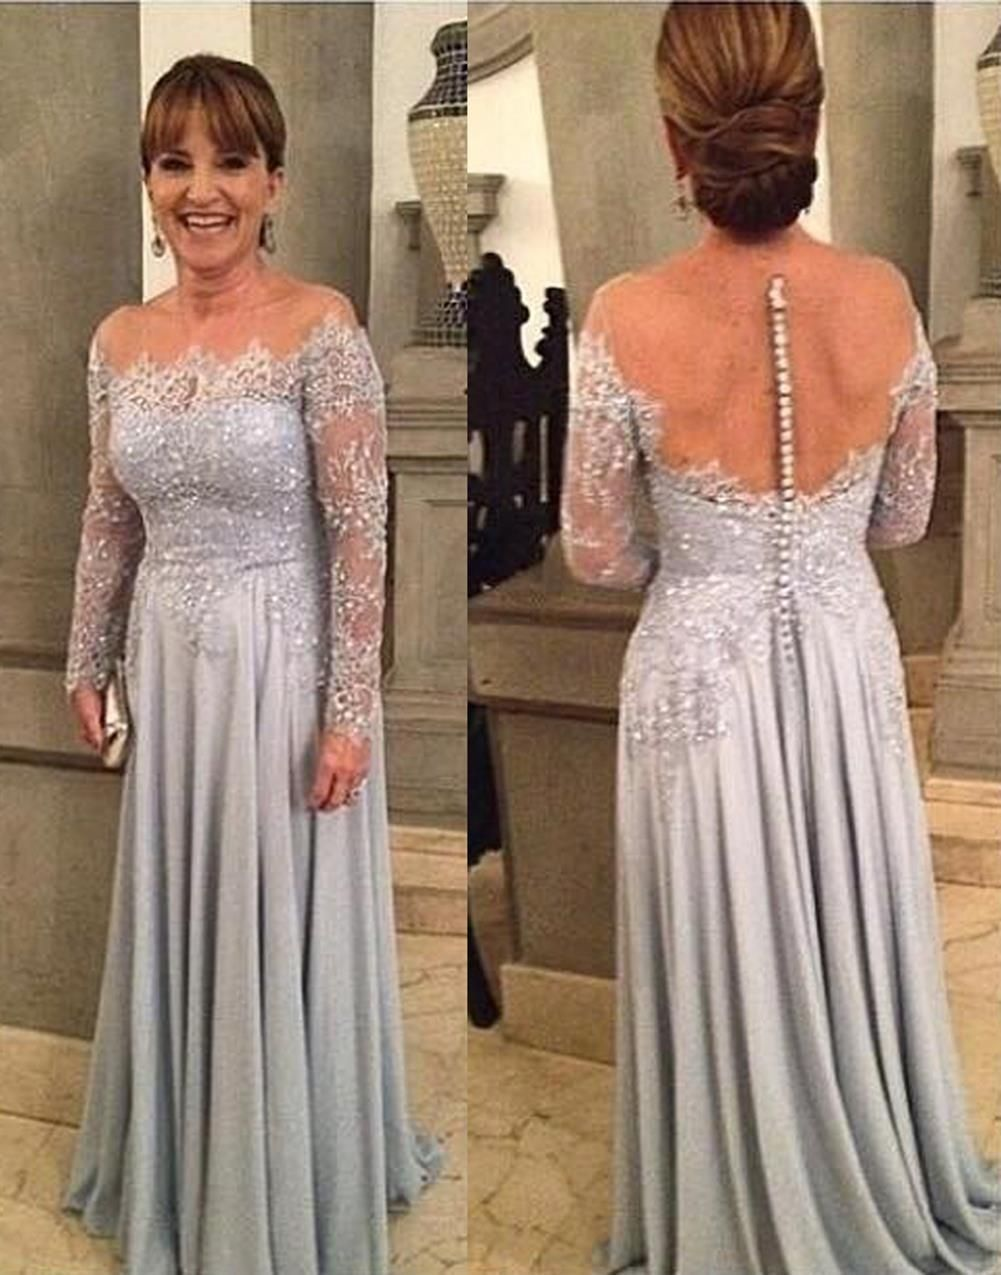 65 mother of the groom dresses for fall weddings